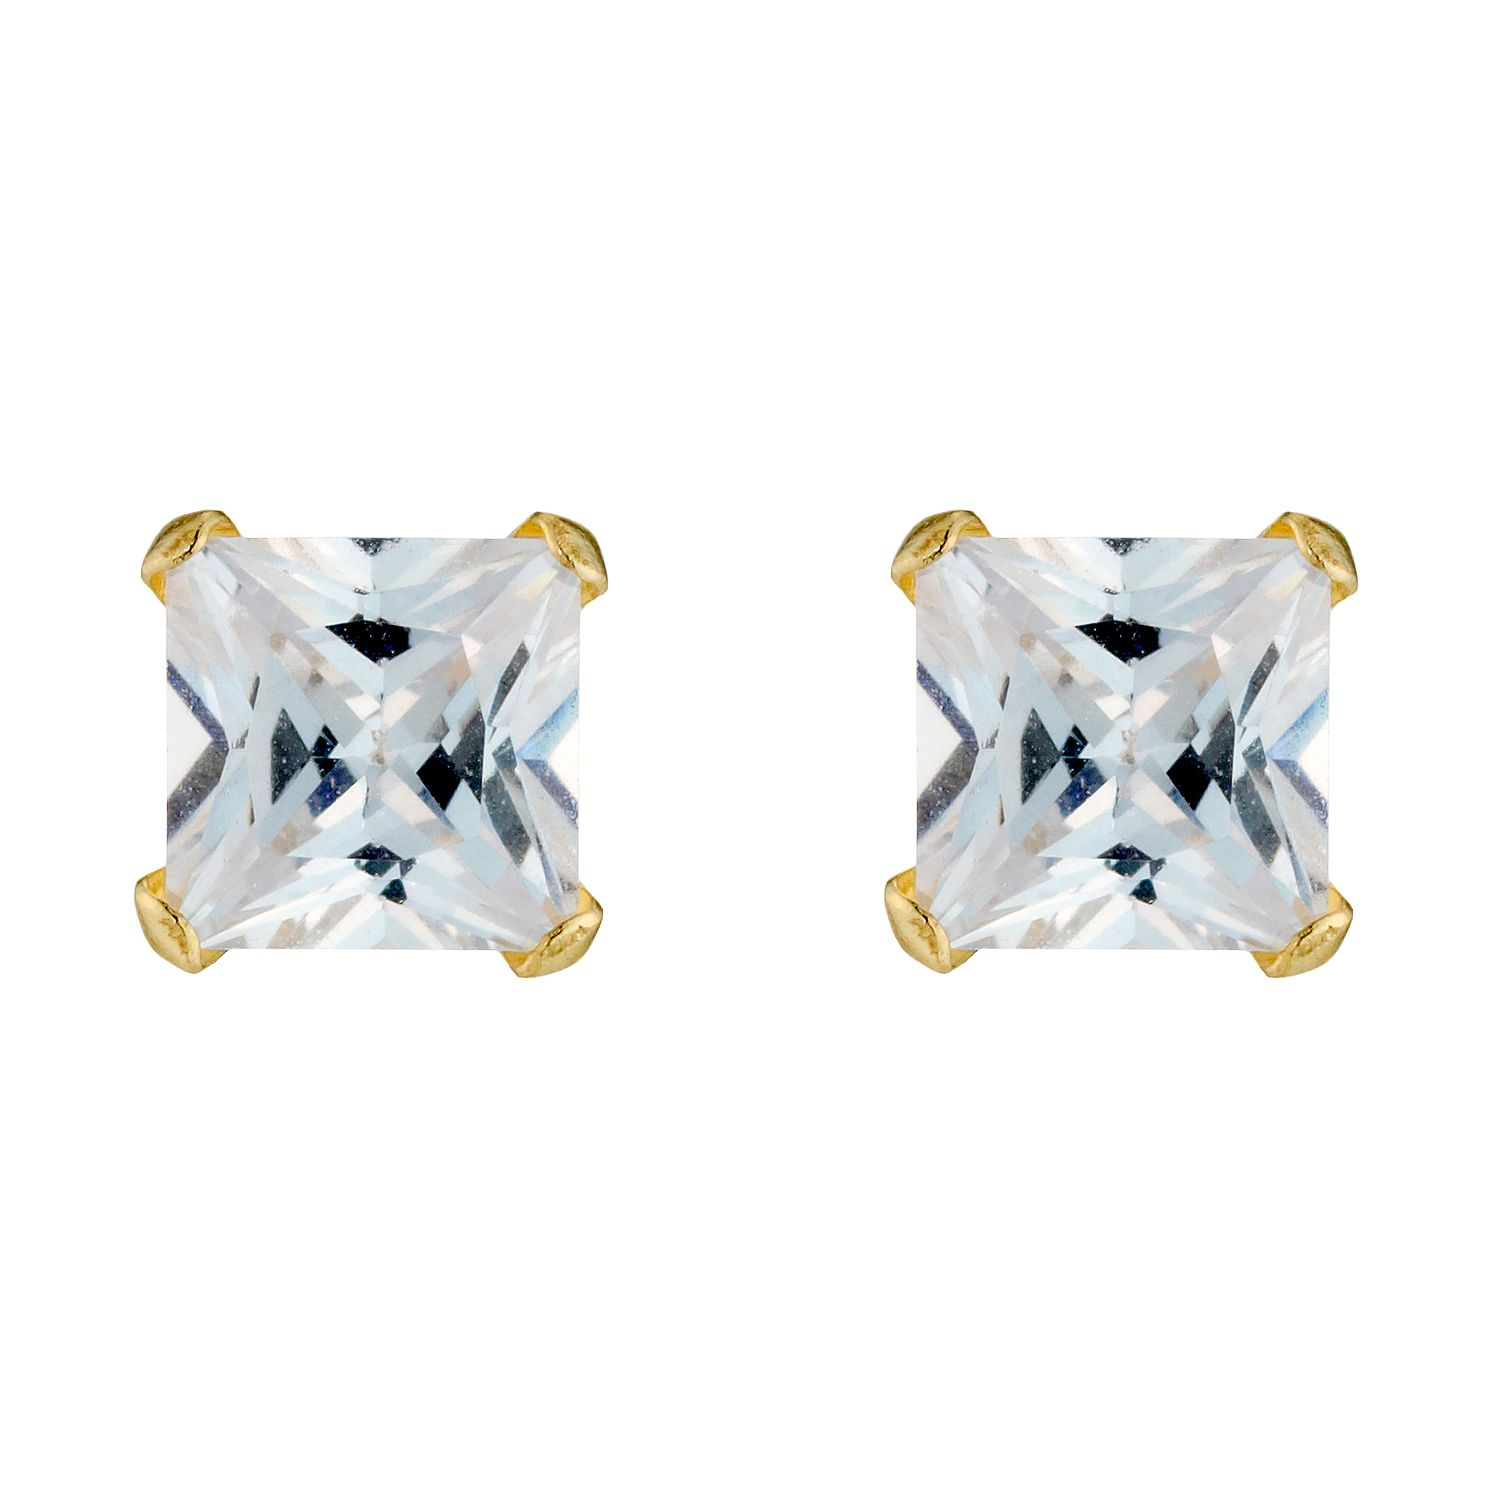 9ct Yellow Gold Cubic Zirconia Square 5mm Stud Earrings - Product number 3416283